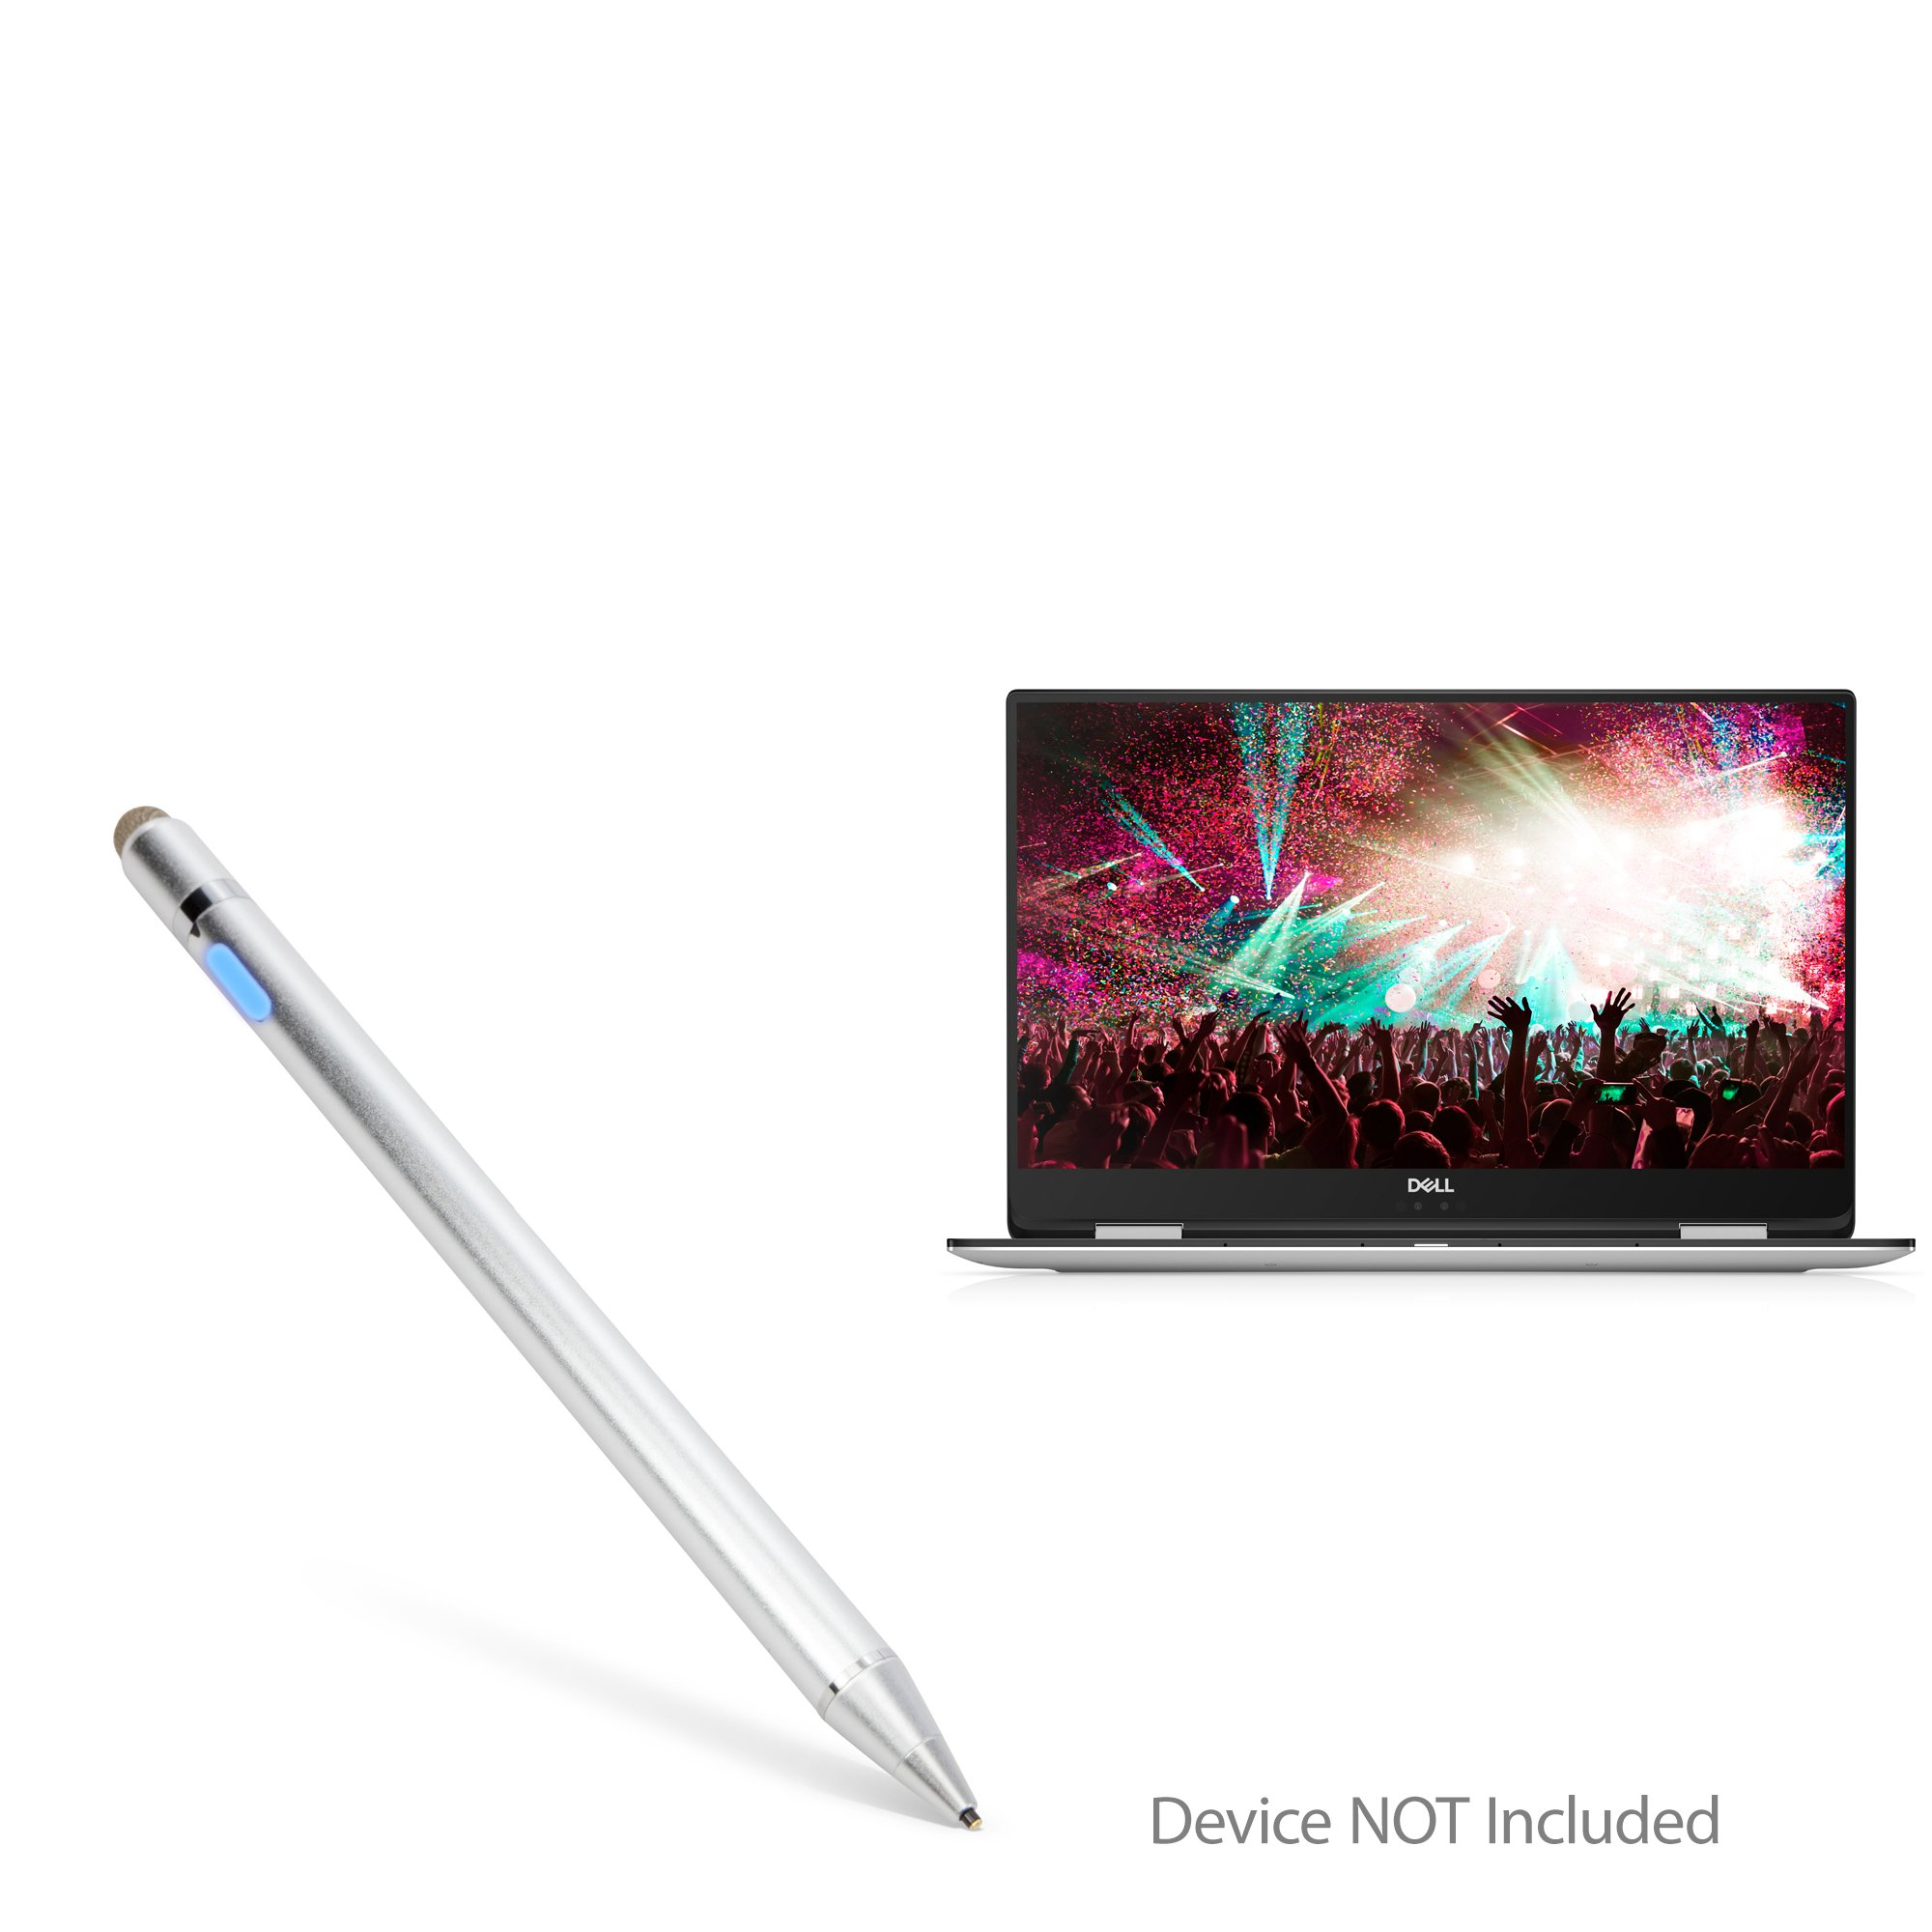 BoxWave Dell XPS 15 2-in-1 (9575) Stylus Pen, [AccuPoint Active Stylus] Electronic Stylus with Ultra Fine Tip for Dell XPS 15 2-in-1 (9575) - Metallic Silver